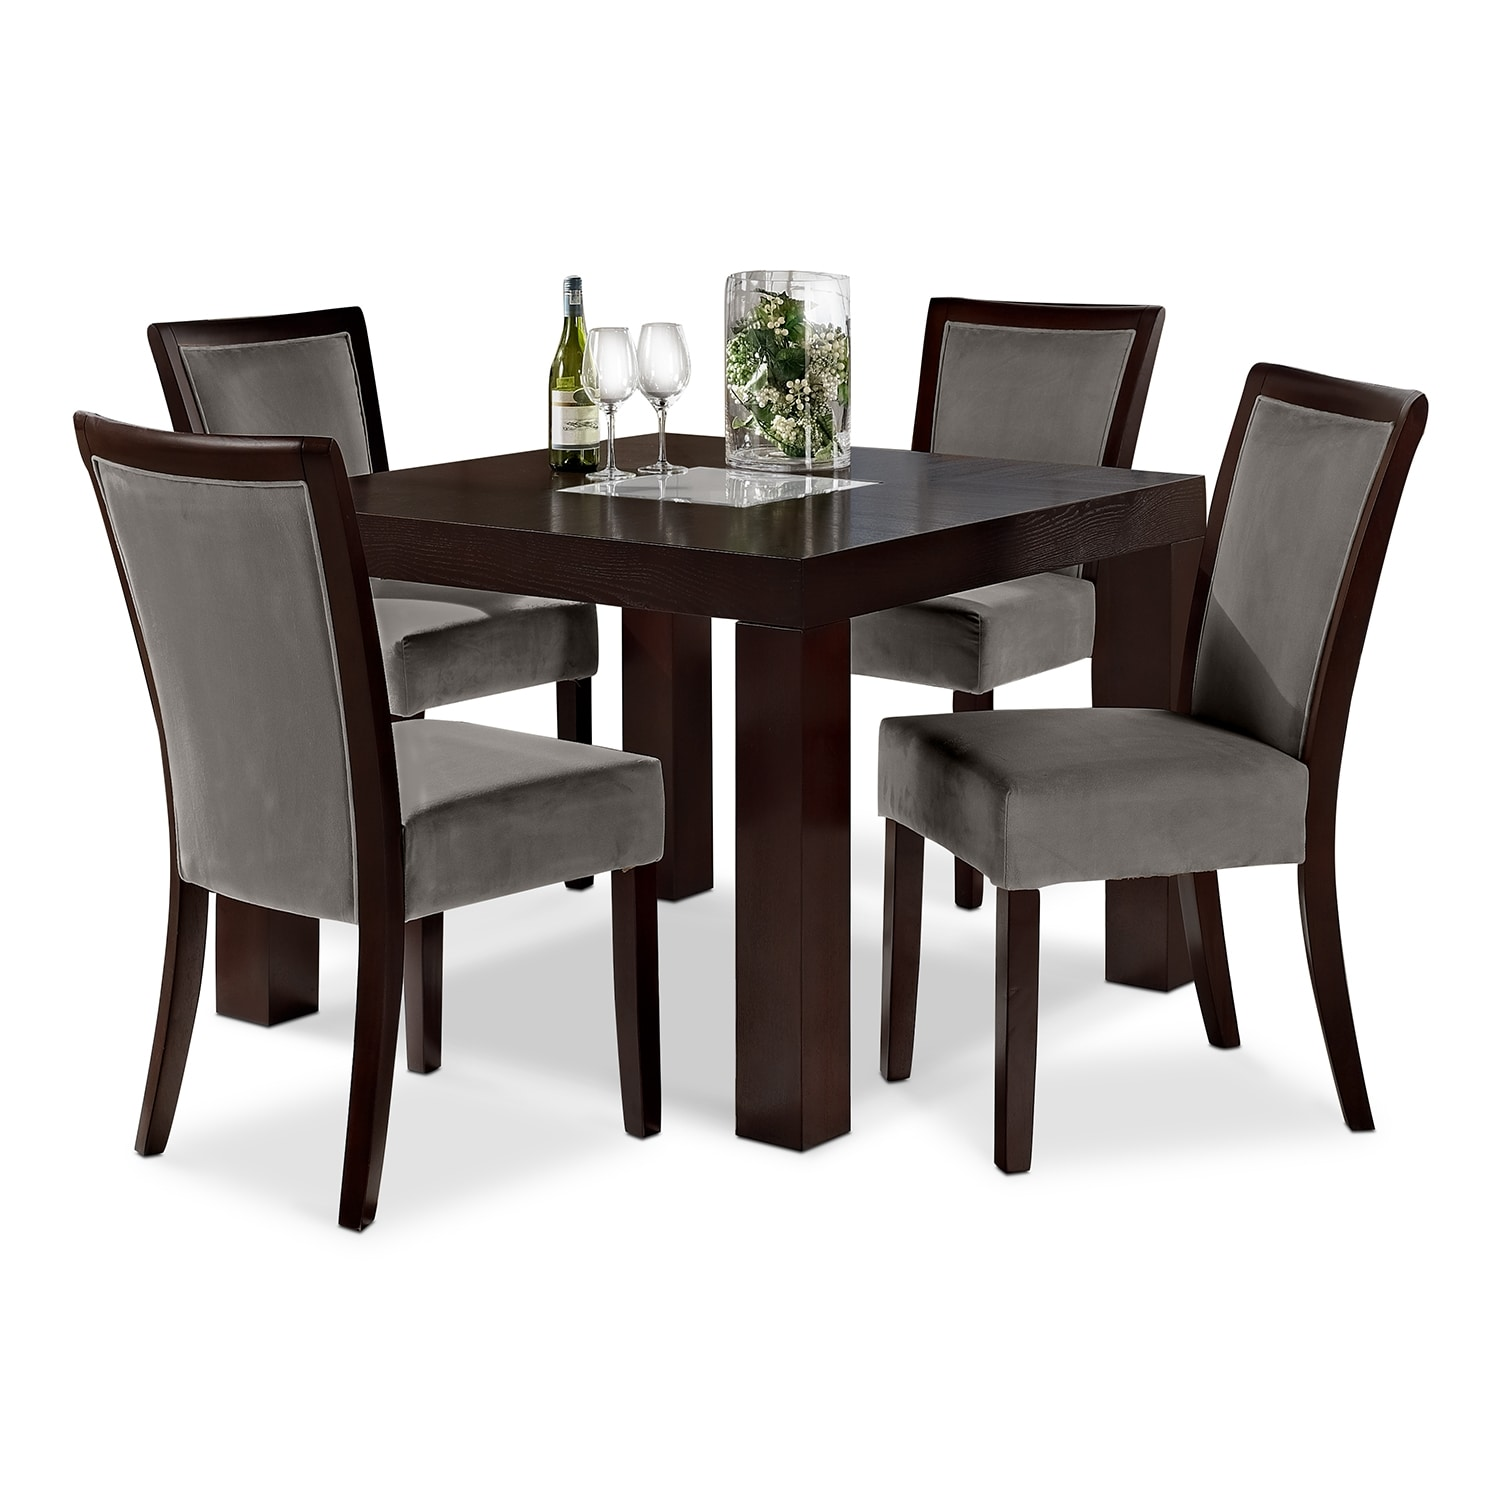 Tango Gray Dining Room 5 Pc Dinette 42 Table Value City Furniture